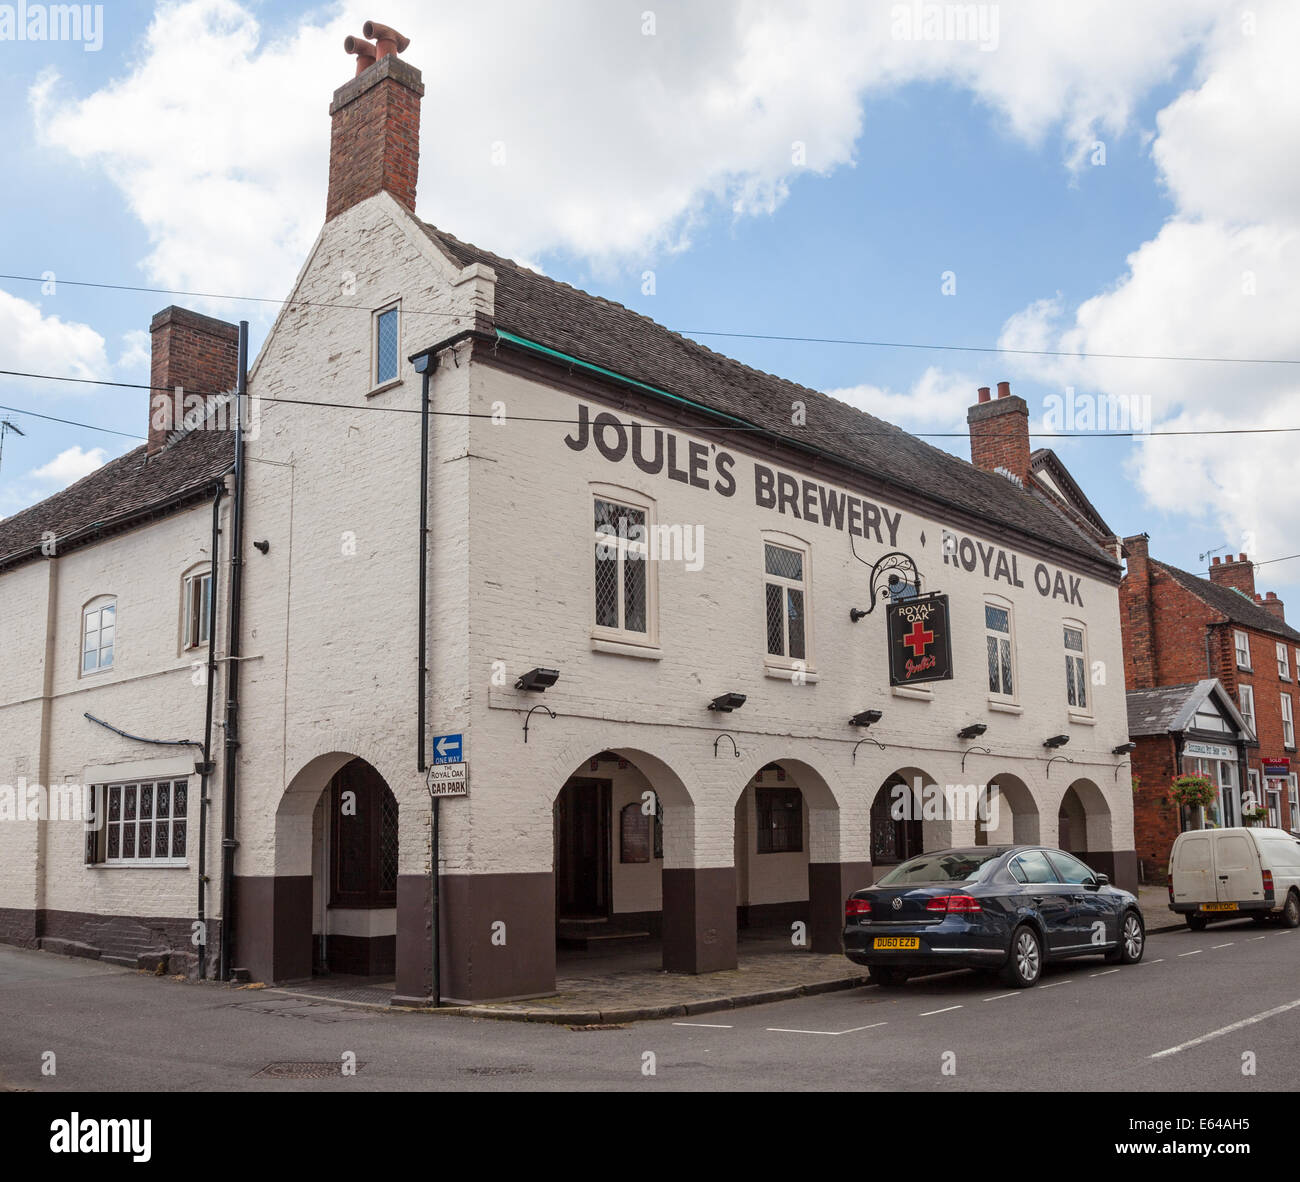 The Royal Oak public house a Joules Brewery pub in Eccleshall Staffordshire England UK - Stock Image